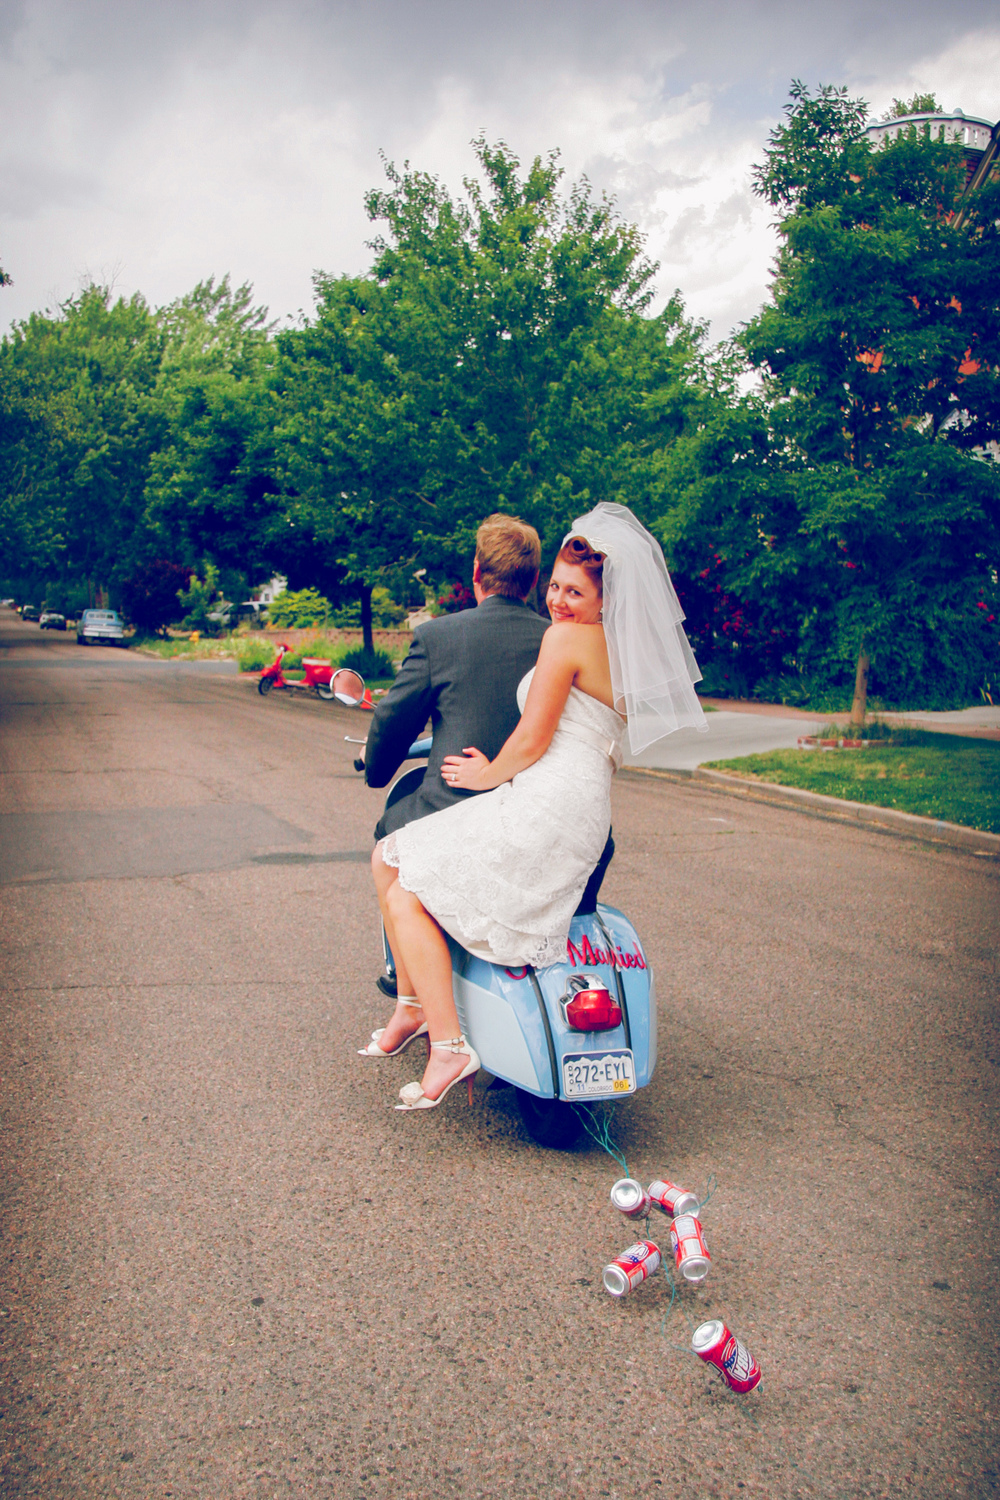 Highlands_Vespa_Denver_Wedding_031.JPG